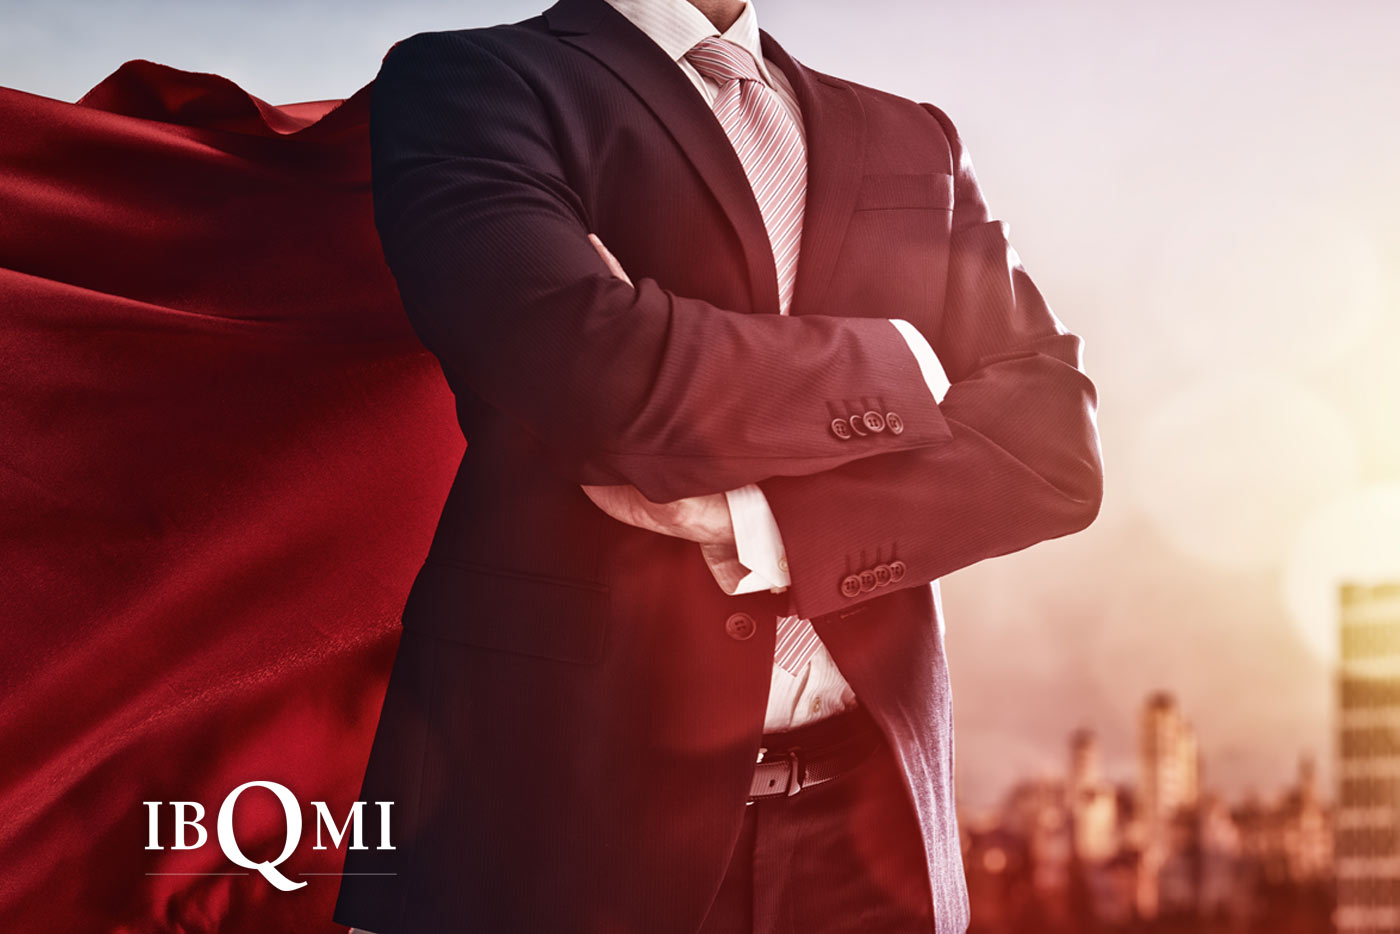 Five most important leadership qualities